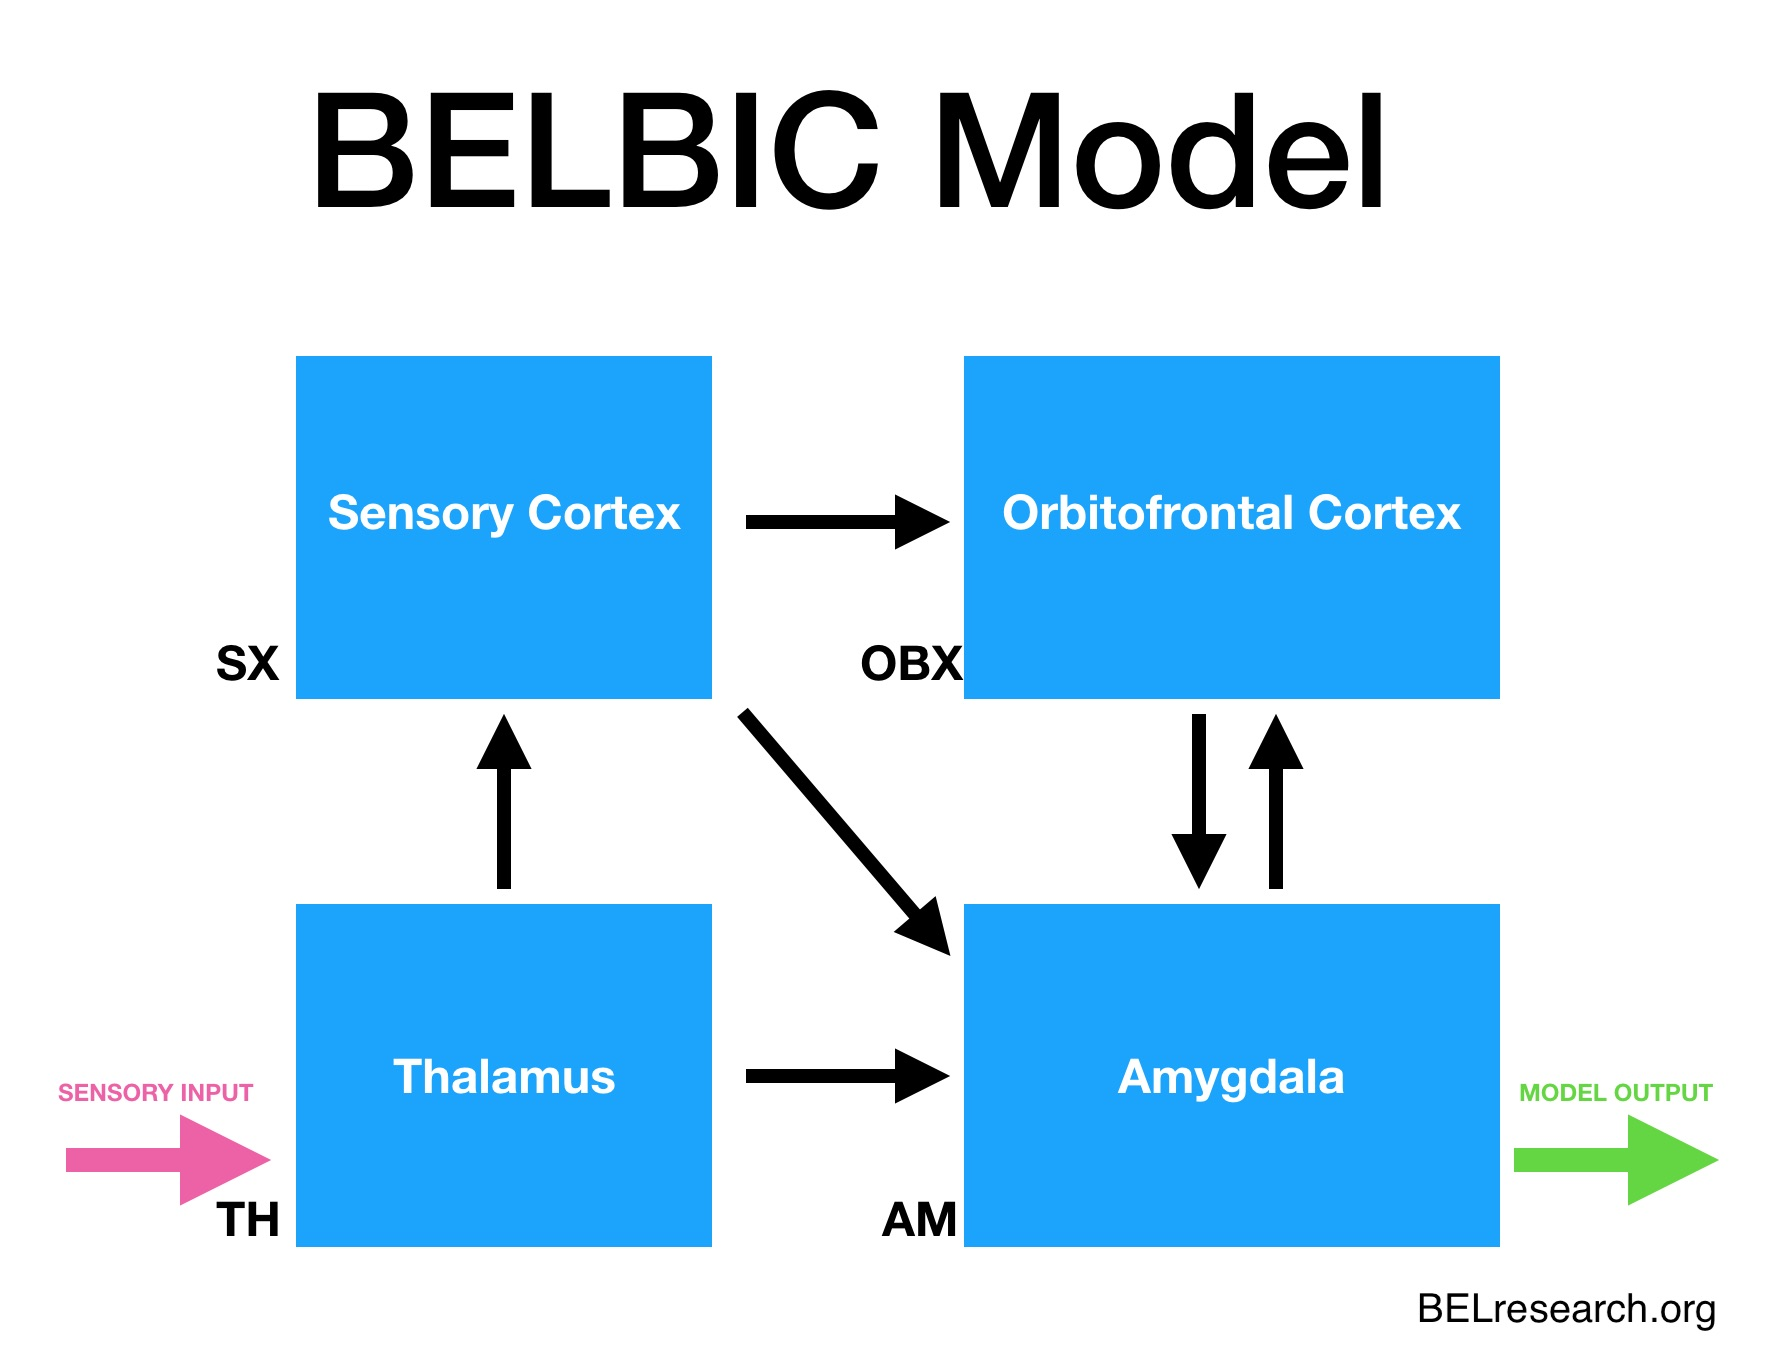 belbic model belresearch